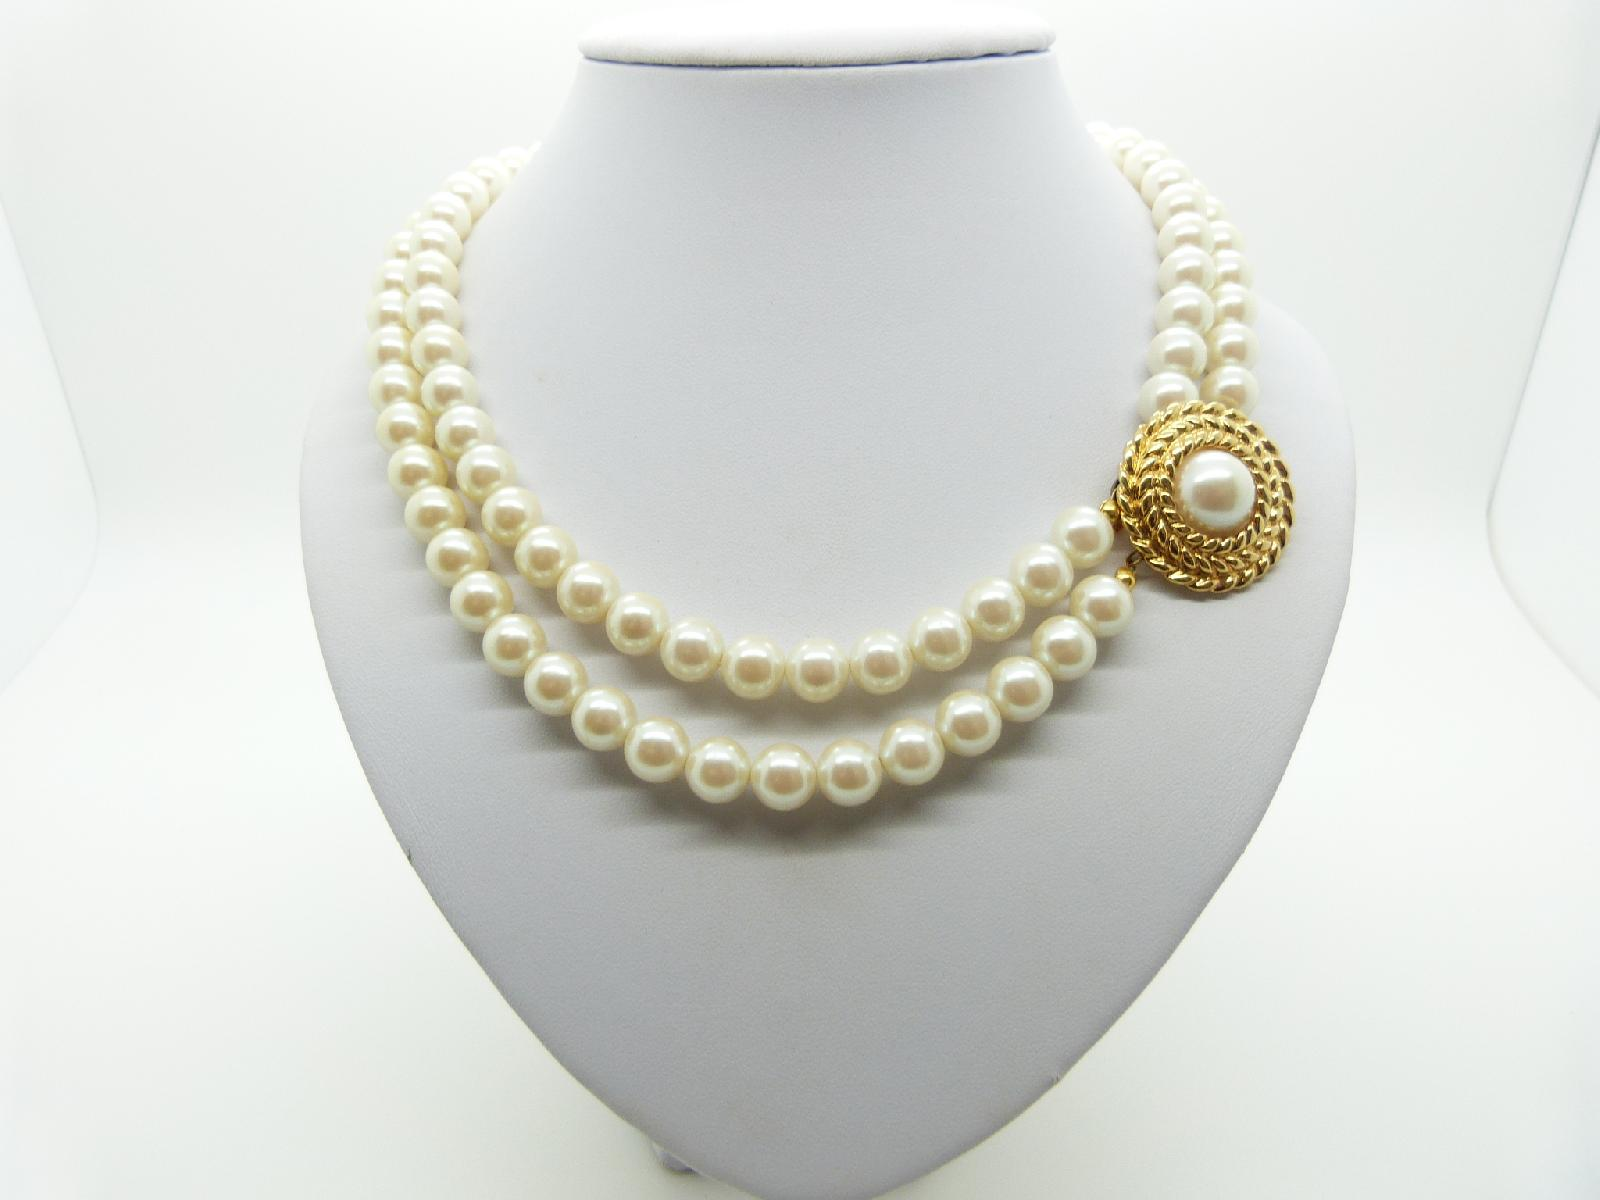 £23.00 - Vintage 80s Classy Two Row Faux Pearl Bead Necklace with Gold Side Clasp